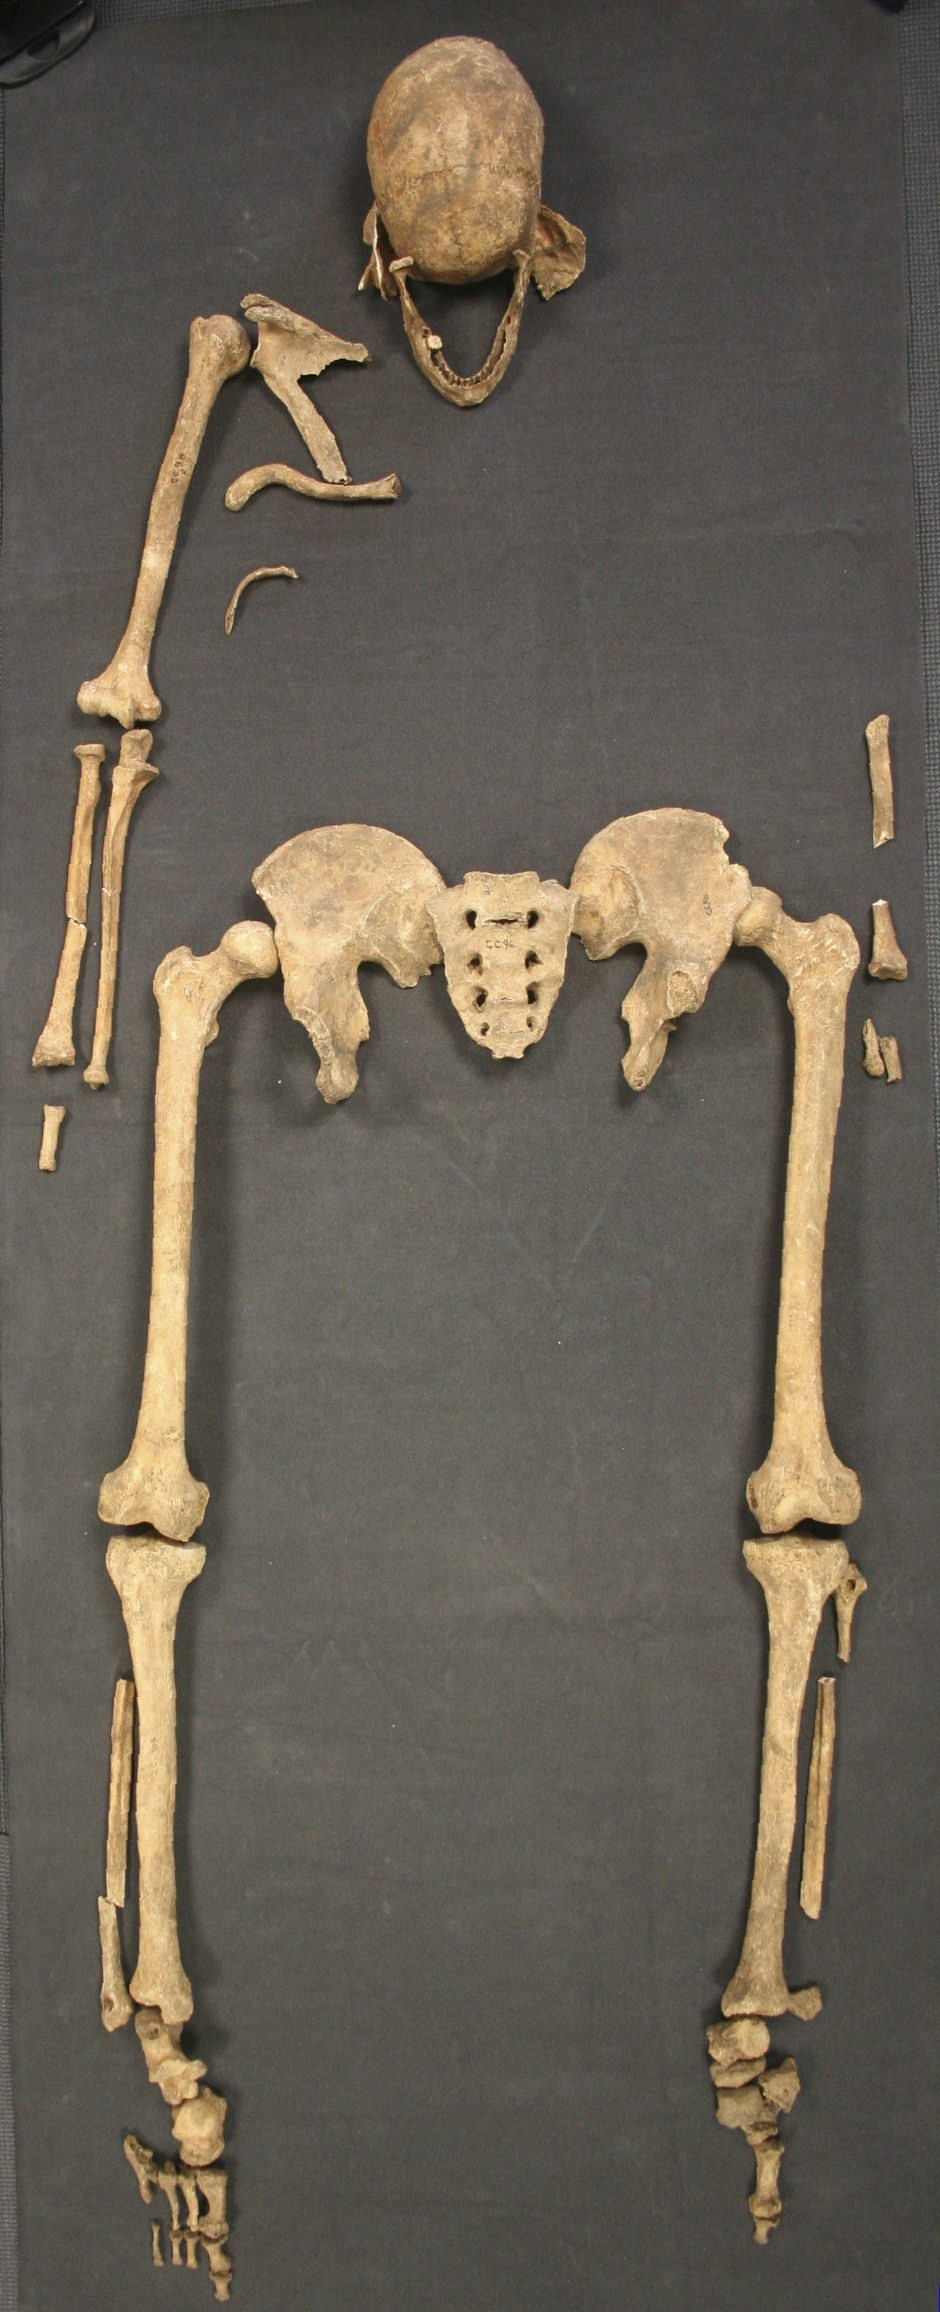 This skeleton indicates leprosy spread to Britain from Scandinavia in the fifth or sixth century.